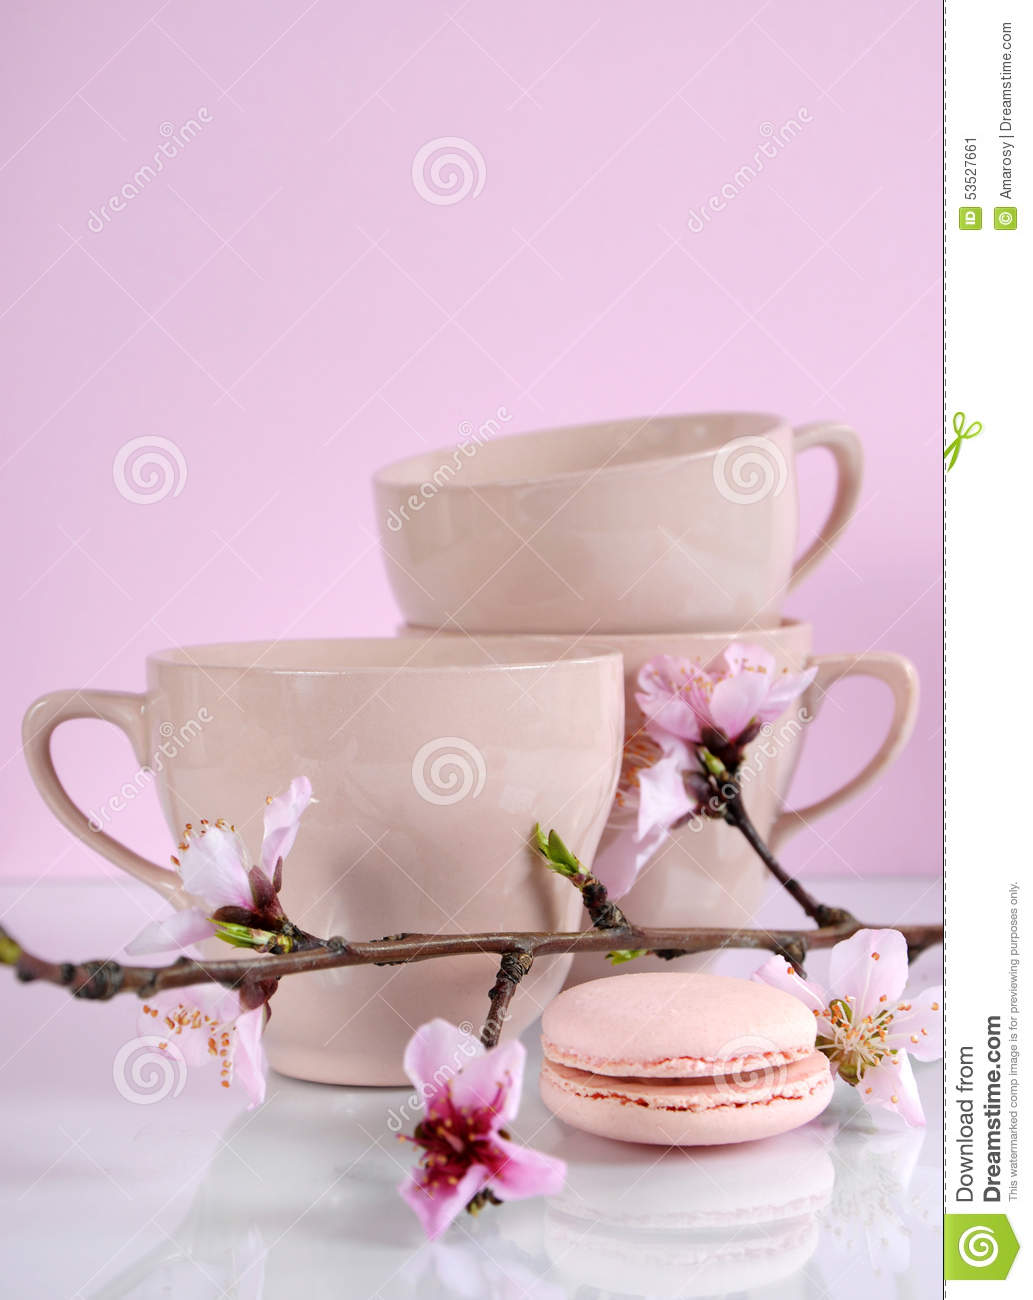 Pink macaron cookie with vintage cups